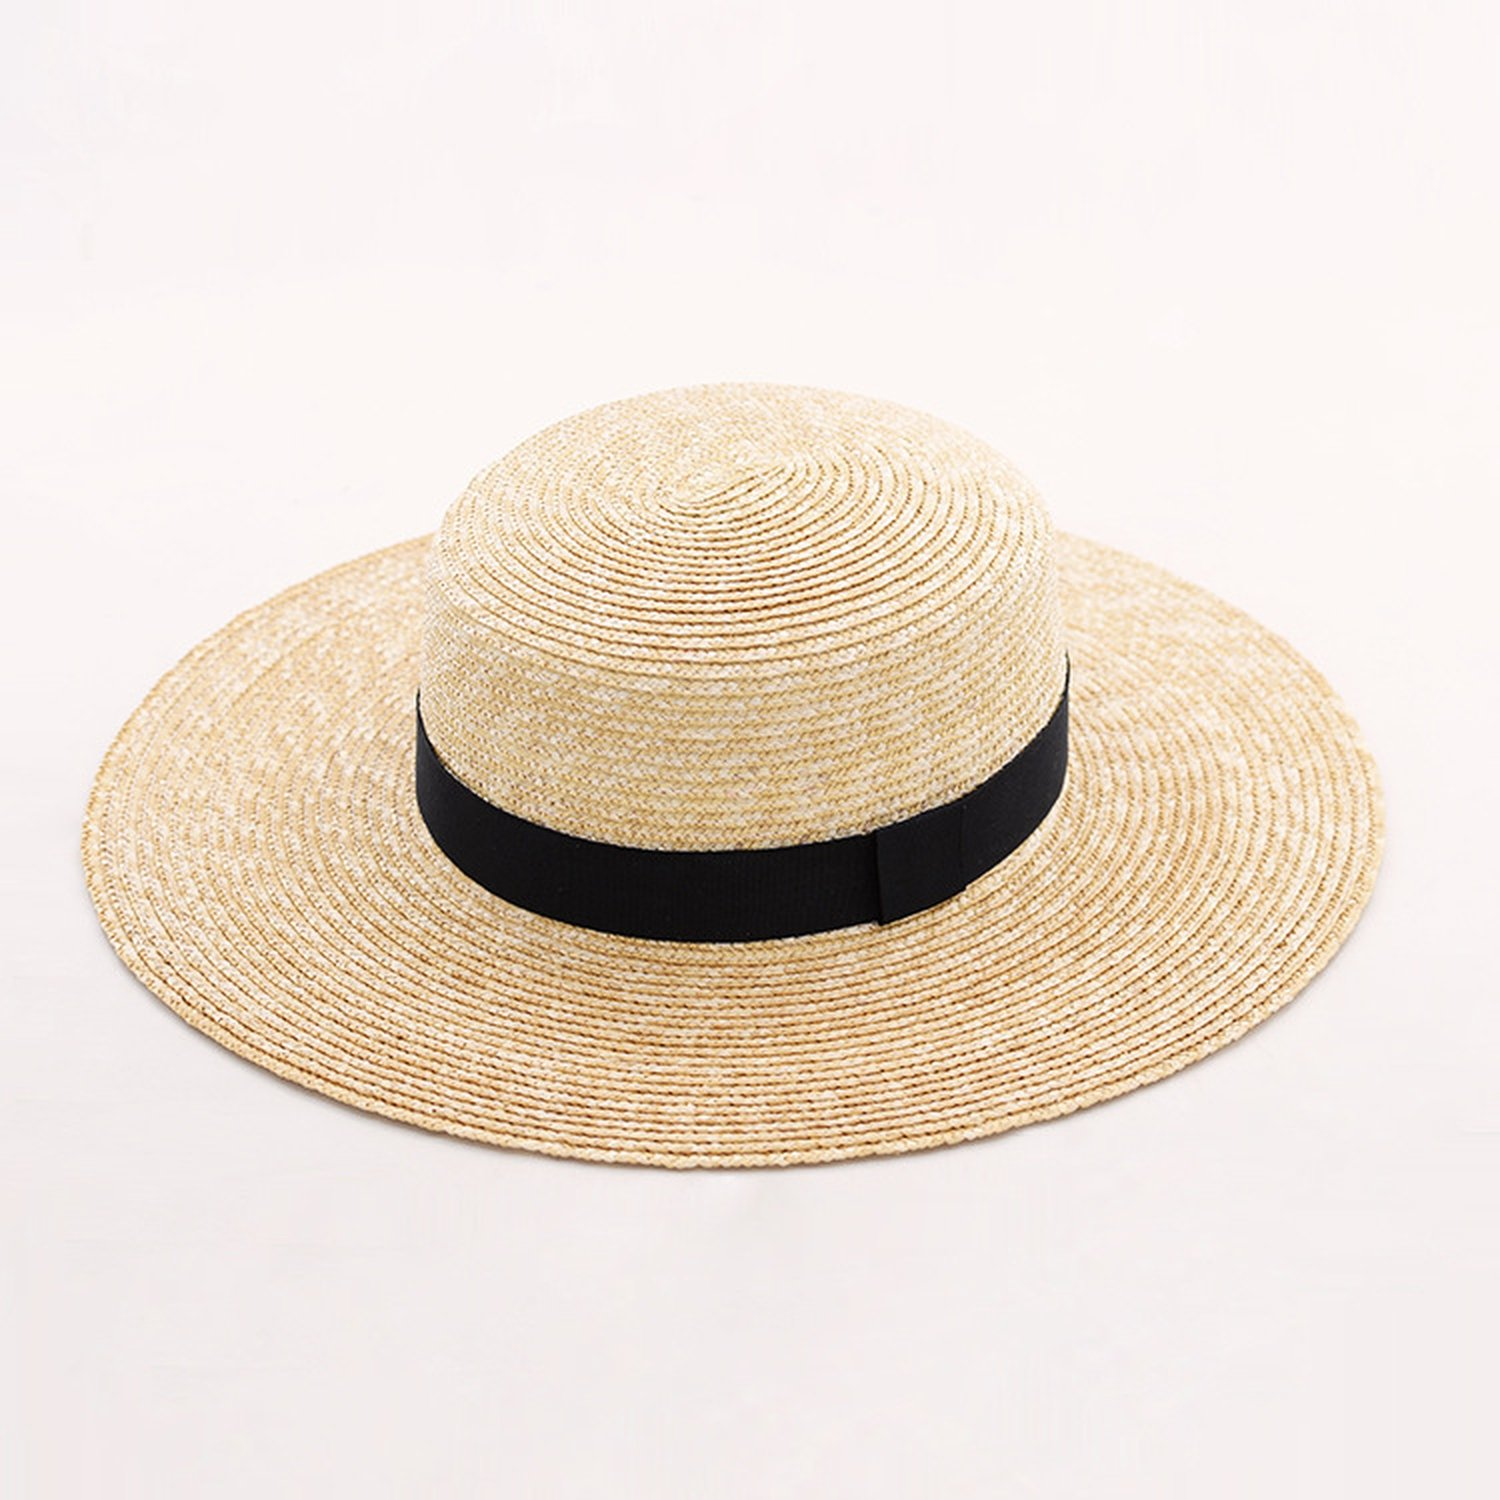 Hyunong natural straw flat straw hat Ms. spring and summer with a flat straw hat,0.6CM fine *10,M (56-58cm)